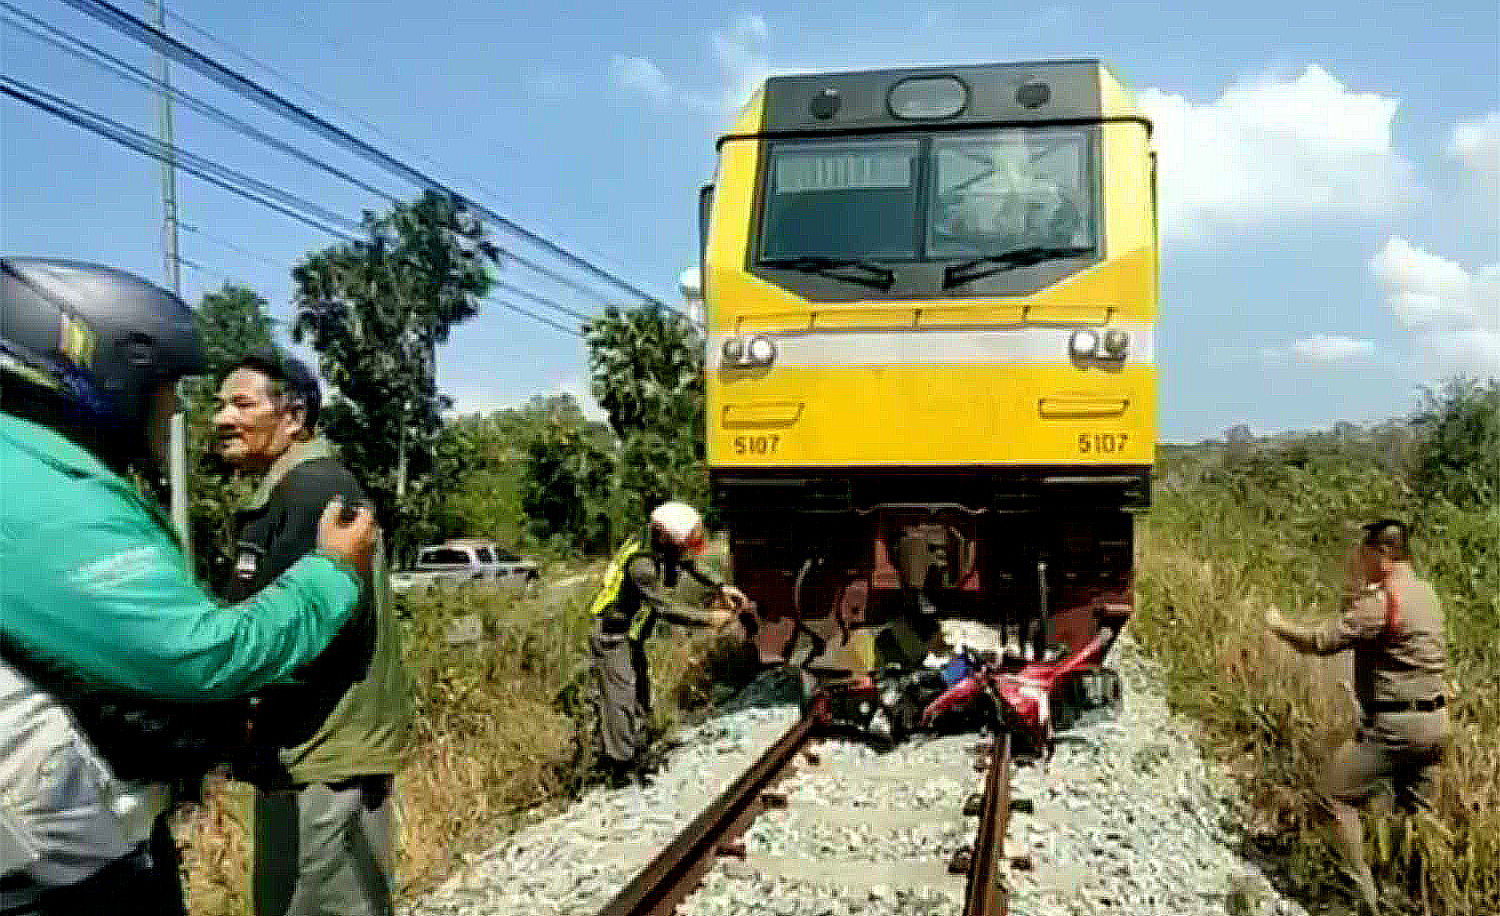 Motorcyclist crushed by train in Pattaya | Thaiger